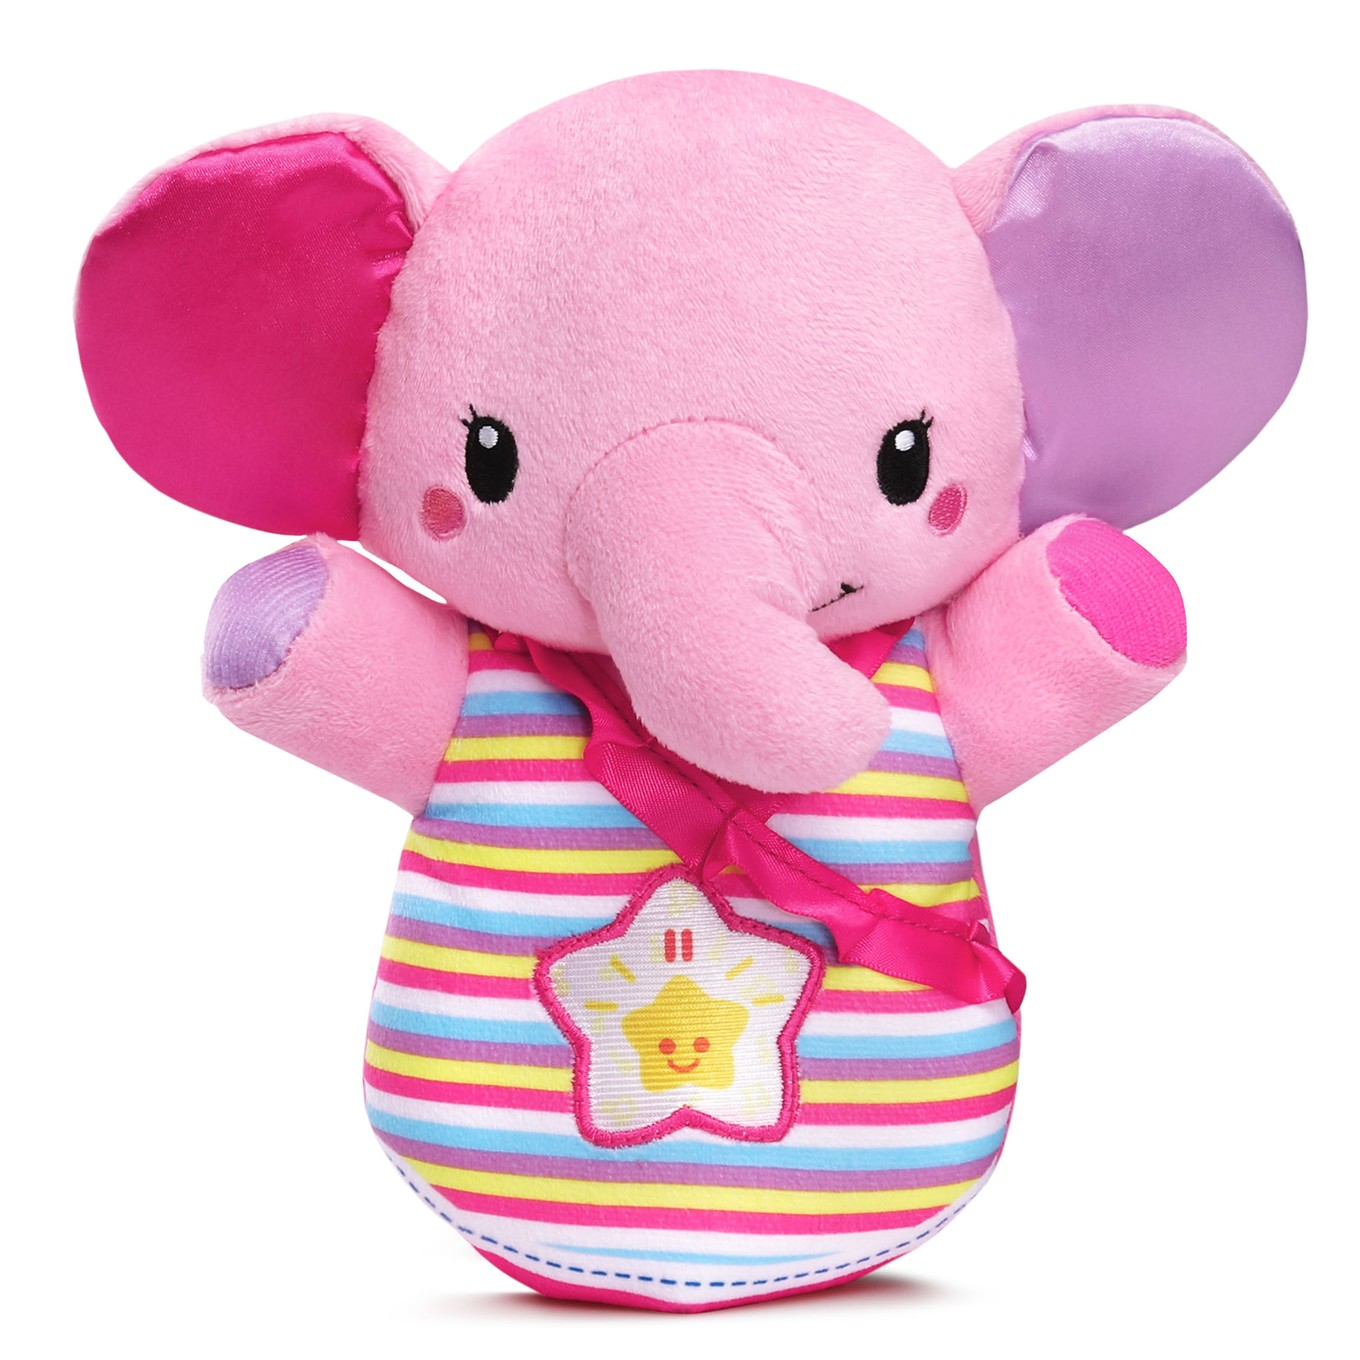 Glowing Lullabies Elephant Baby Toy │ Vtech 174